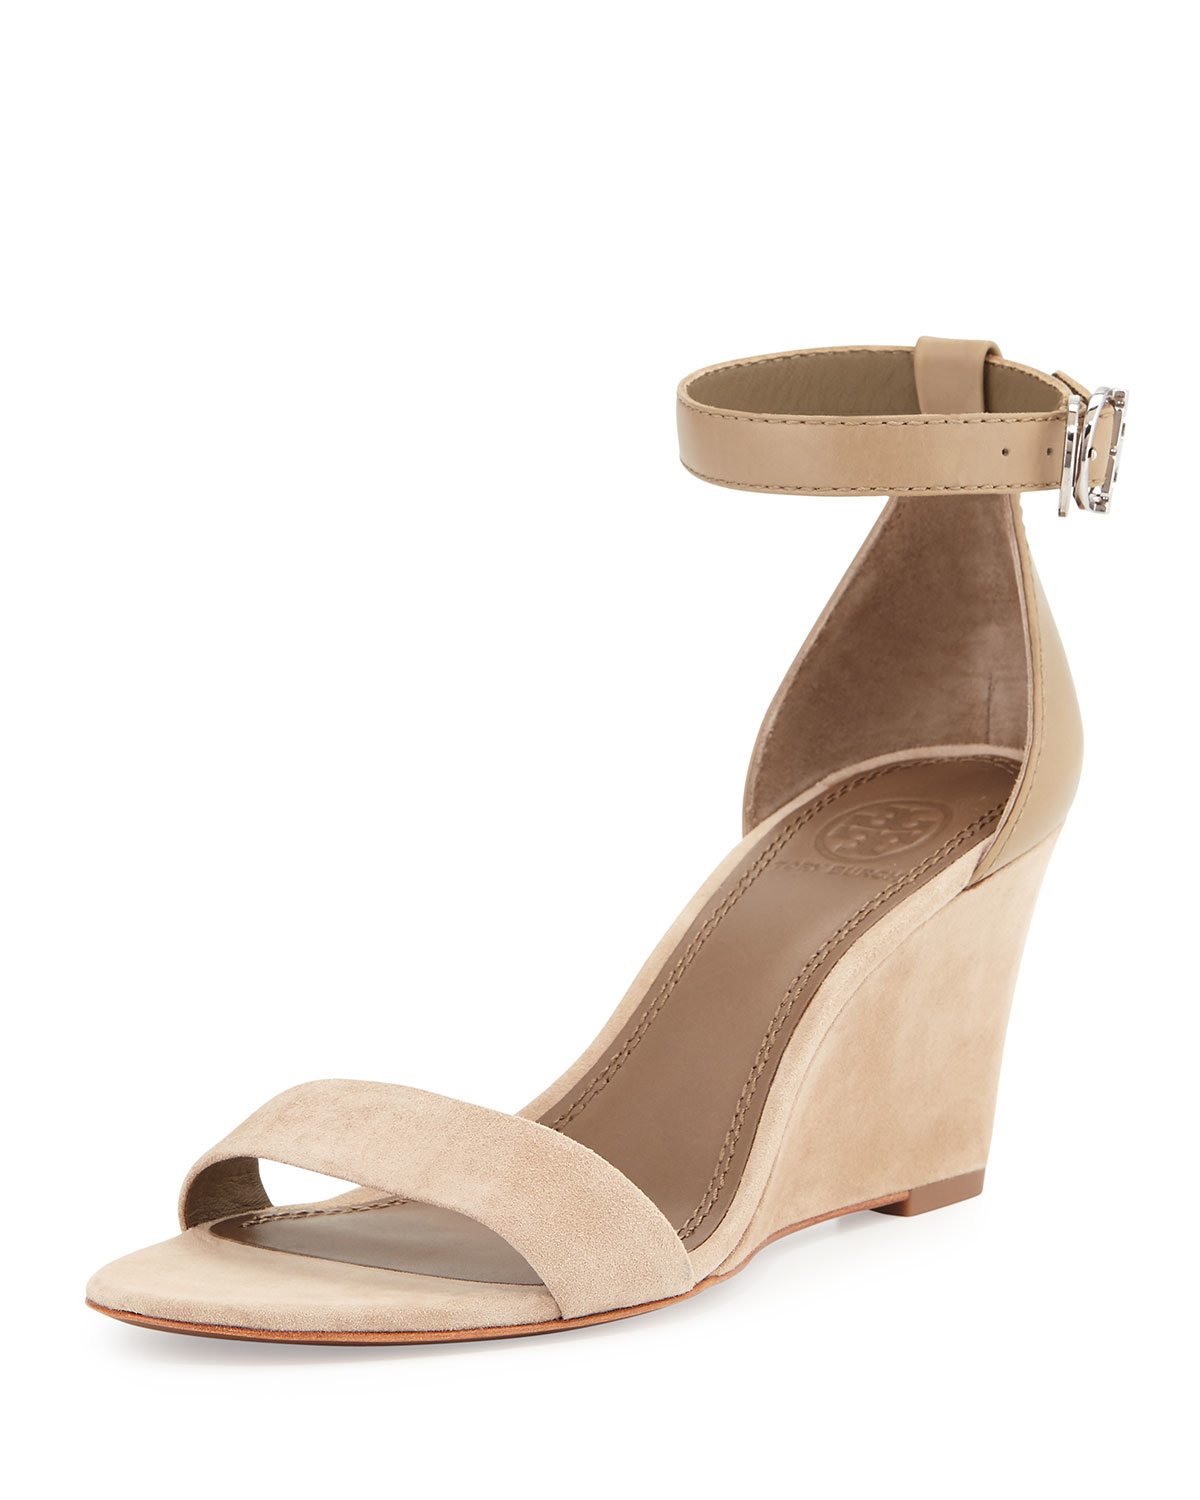 0f647793f091e5 Lyst - Tory Burch Thames Suede Wedges in Brown